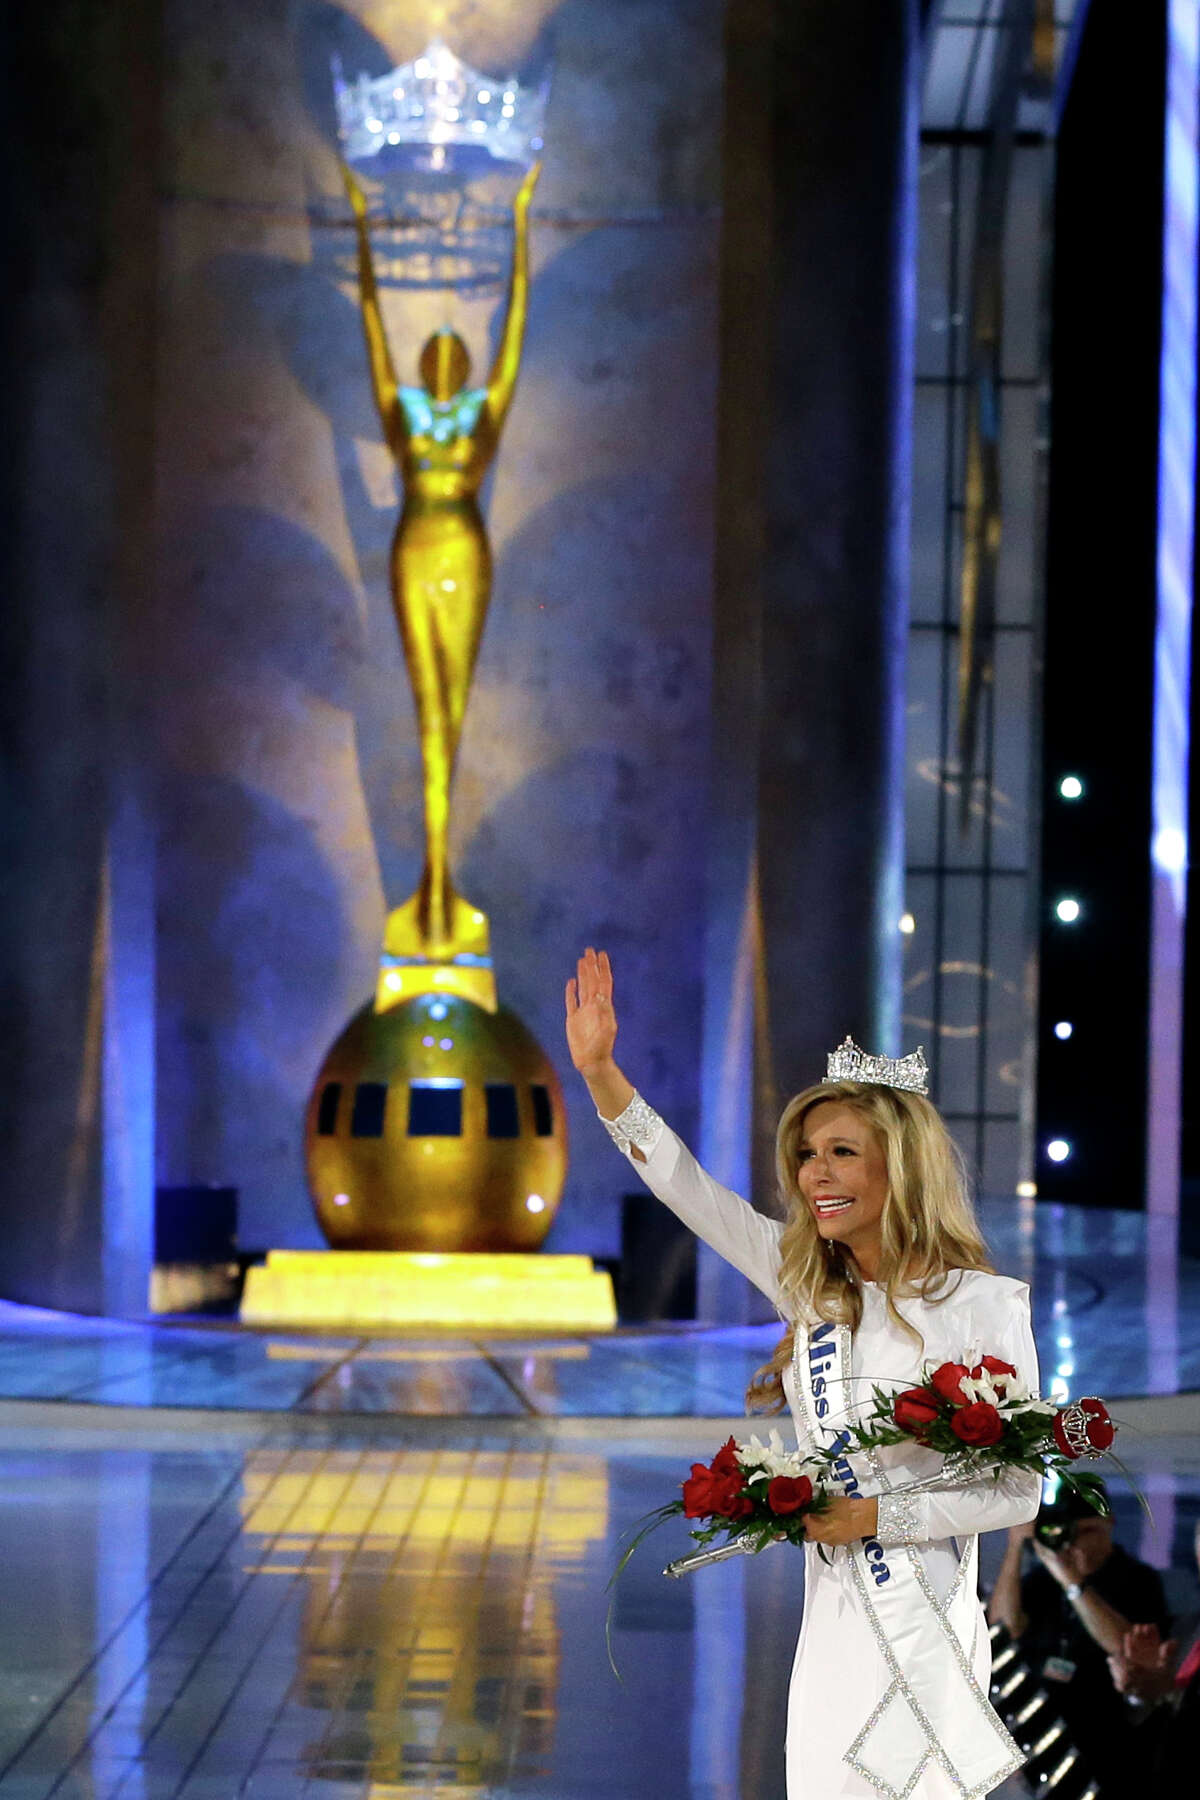 Miss New York Kira Kazantsev waves after being crowned Miss America 2015 during the Miss America 2015 pageant, Sunday, Sept. 14, 2014, in Atlantic City, N.J.